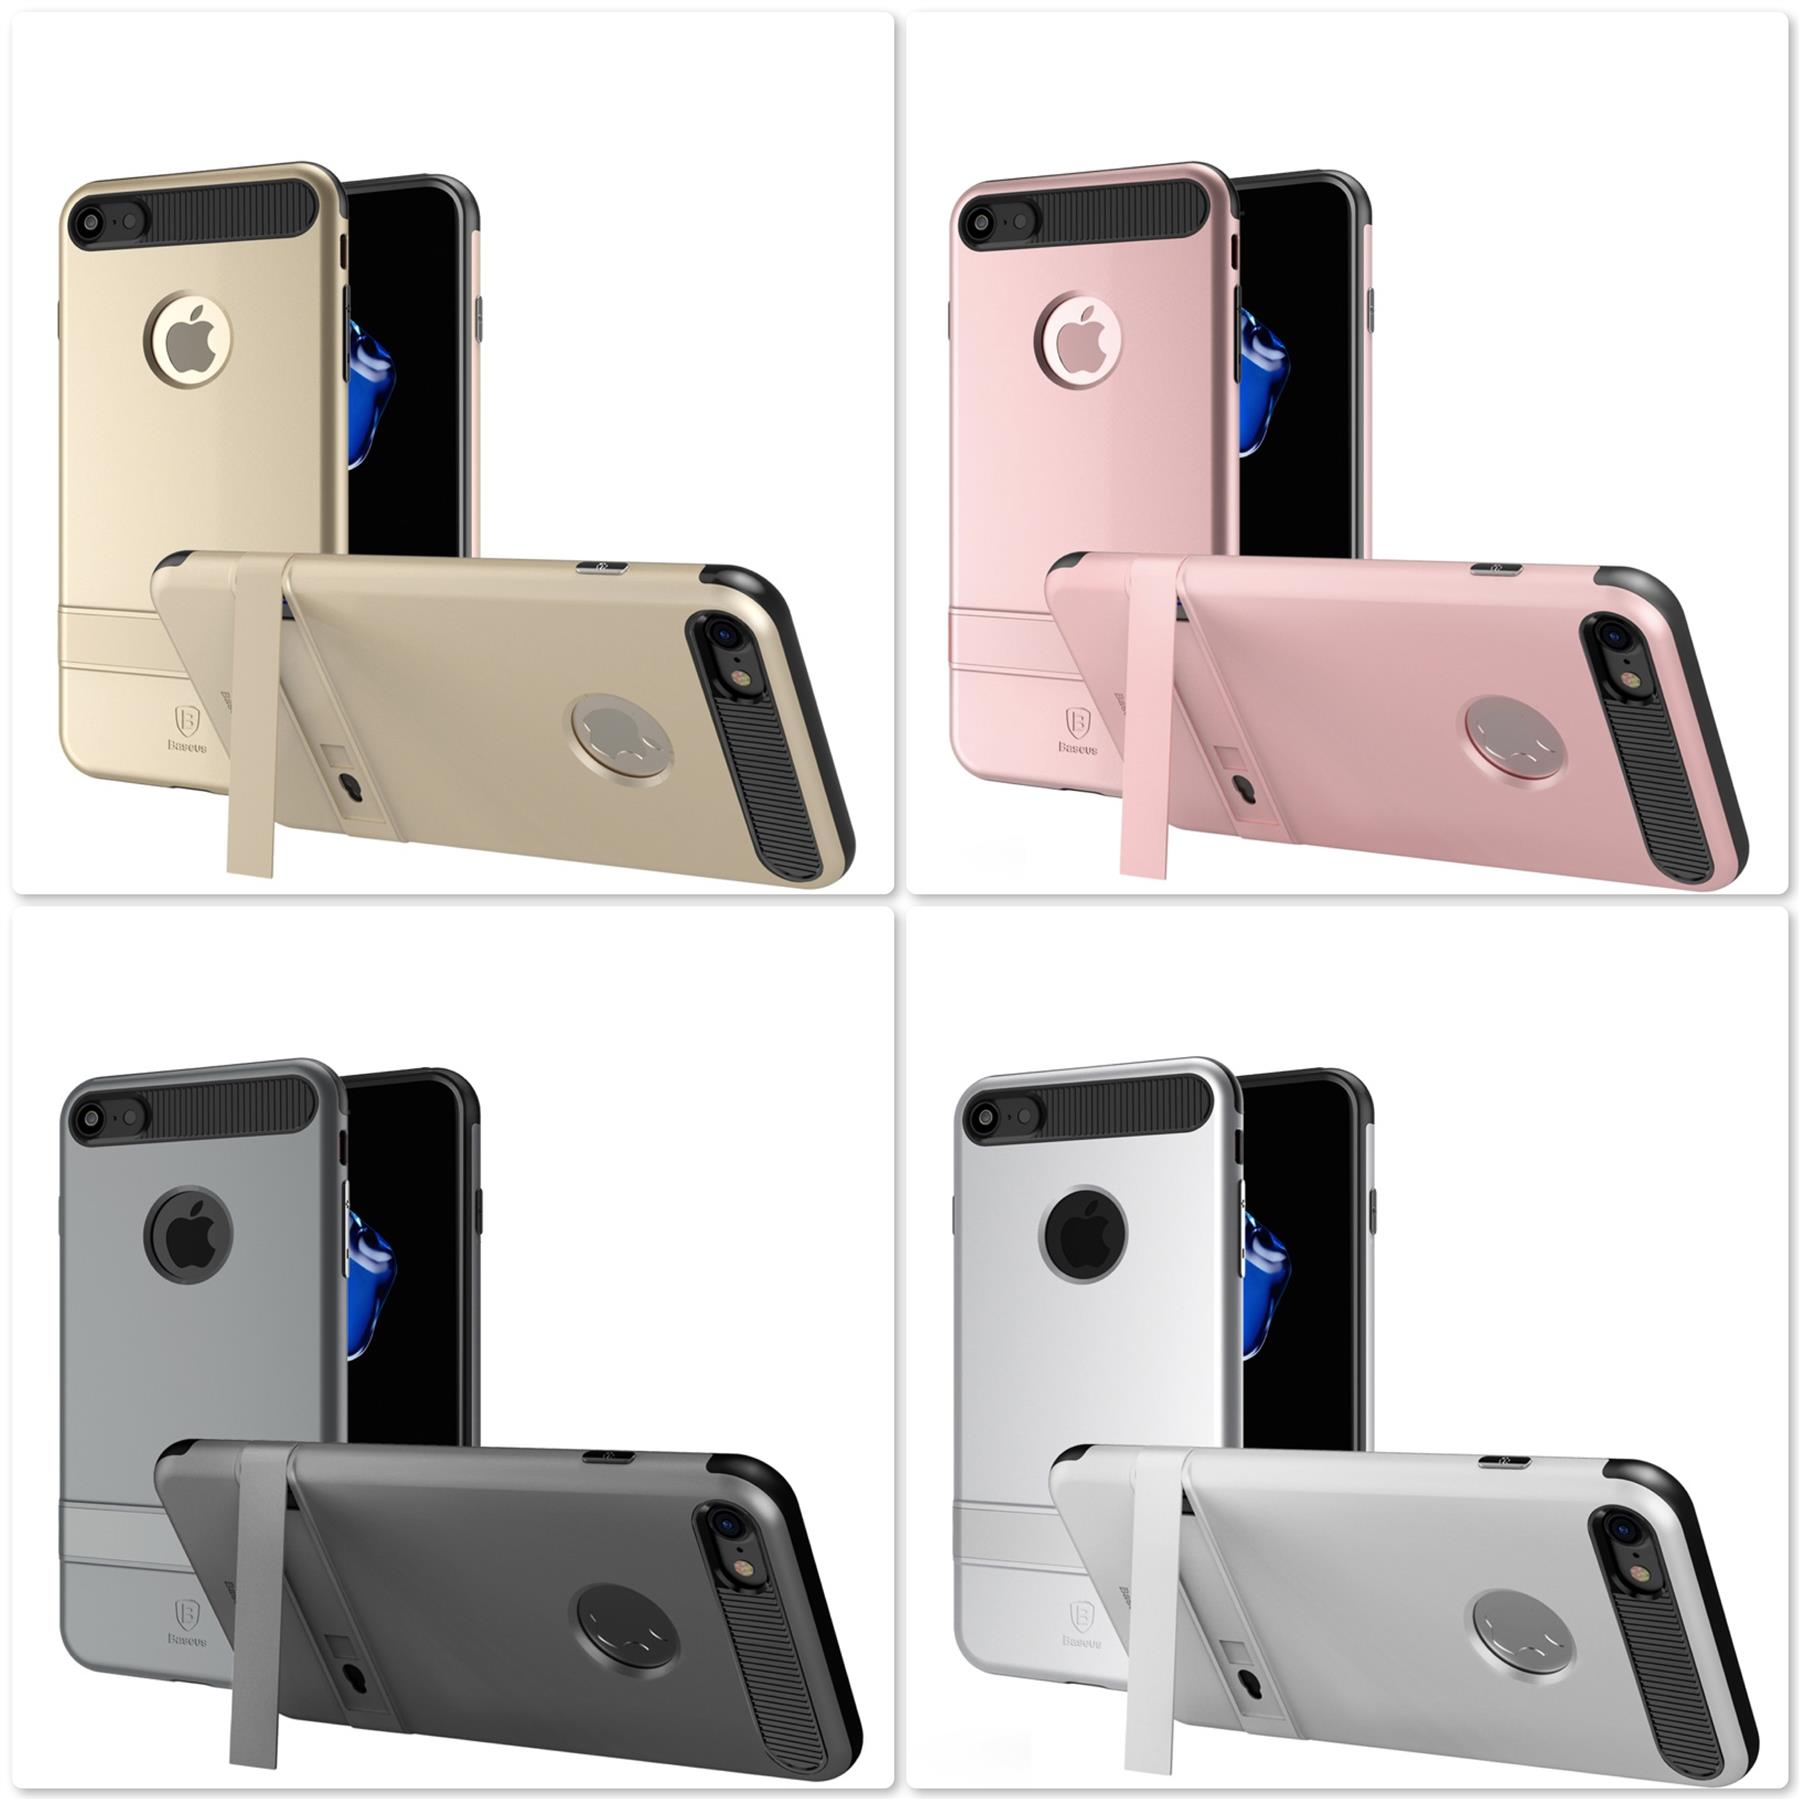 Apple iPhone 7 Baseus iBracket series Dual Layer Protective Case Stand